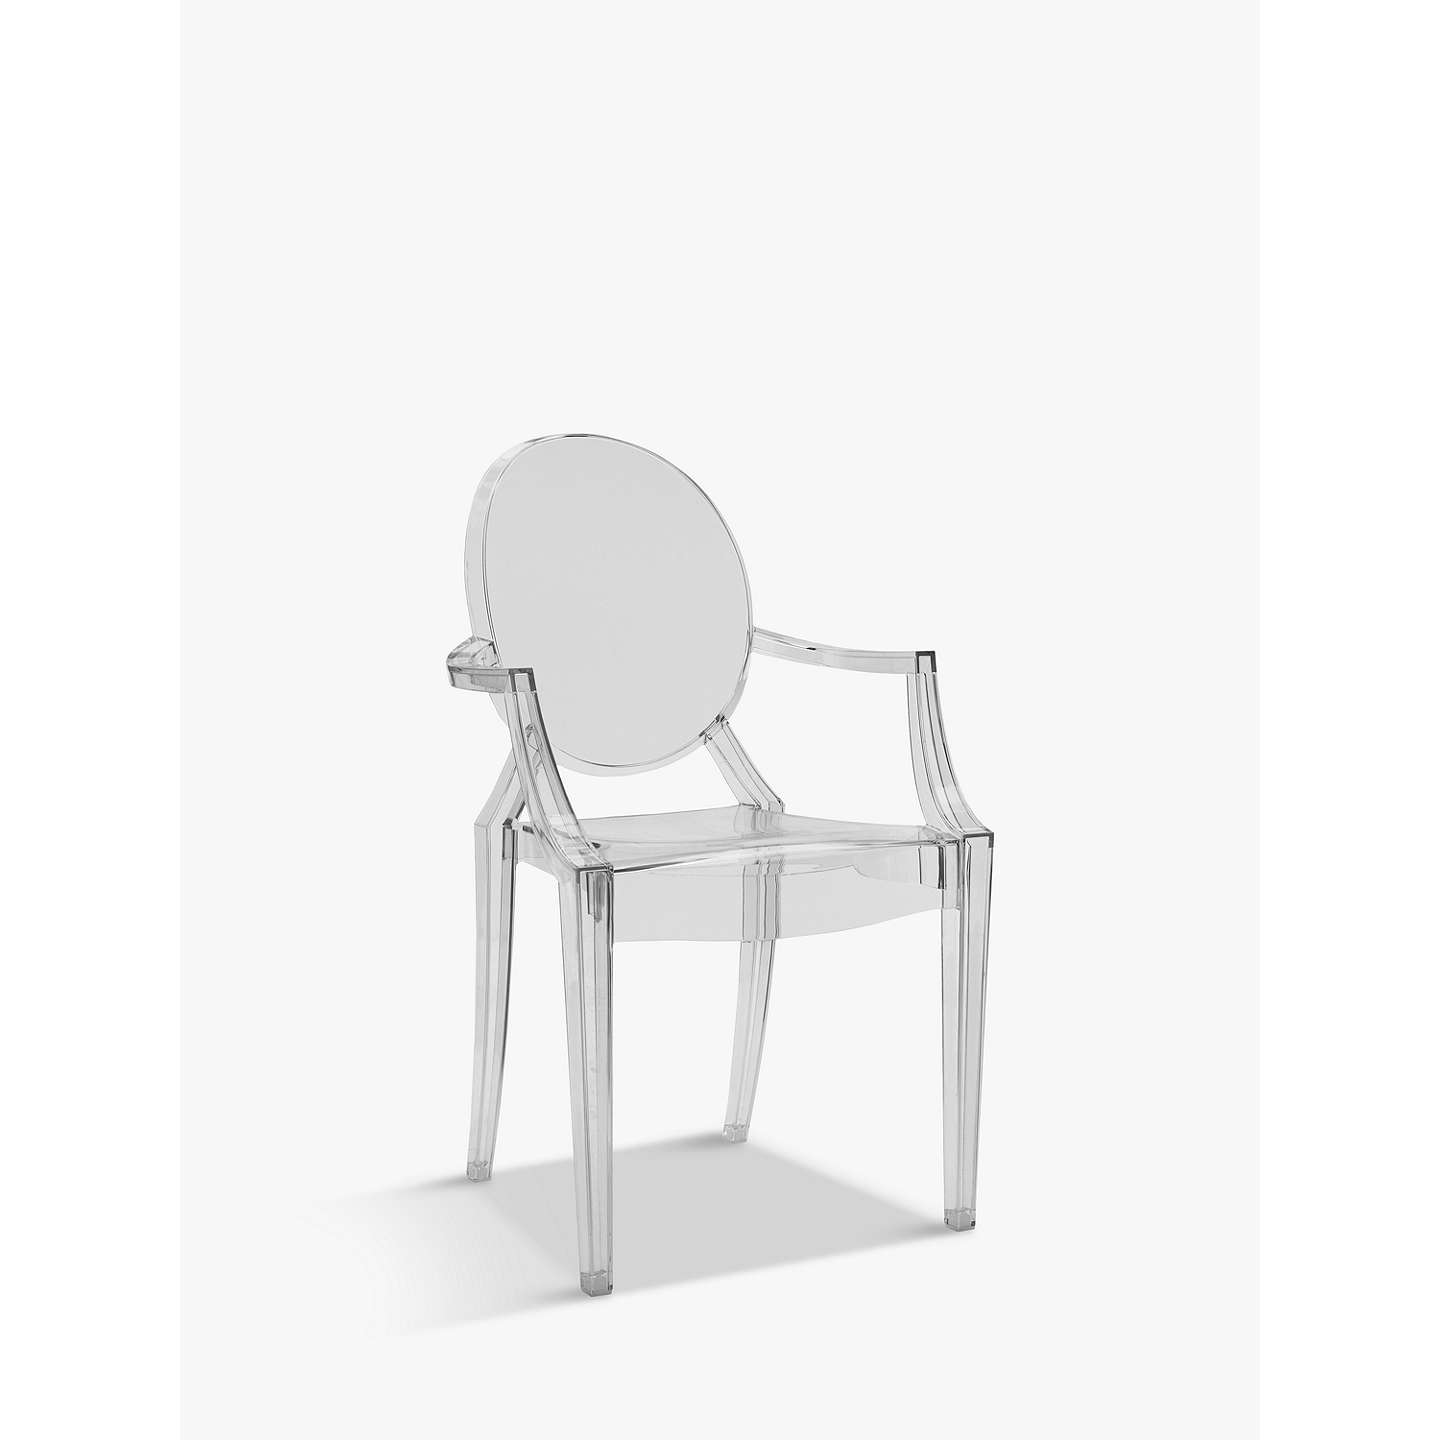 philippe starck for kartell louis ghost chair at john lewis. Black Bedroom Furniture Sets. Home Design Ideas